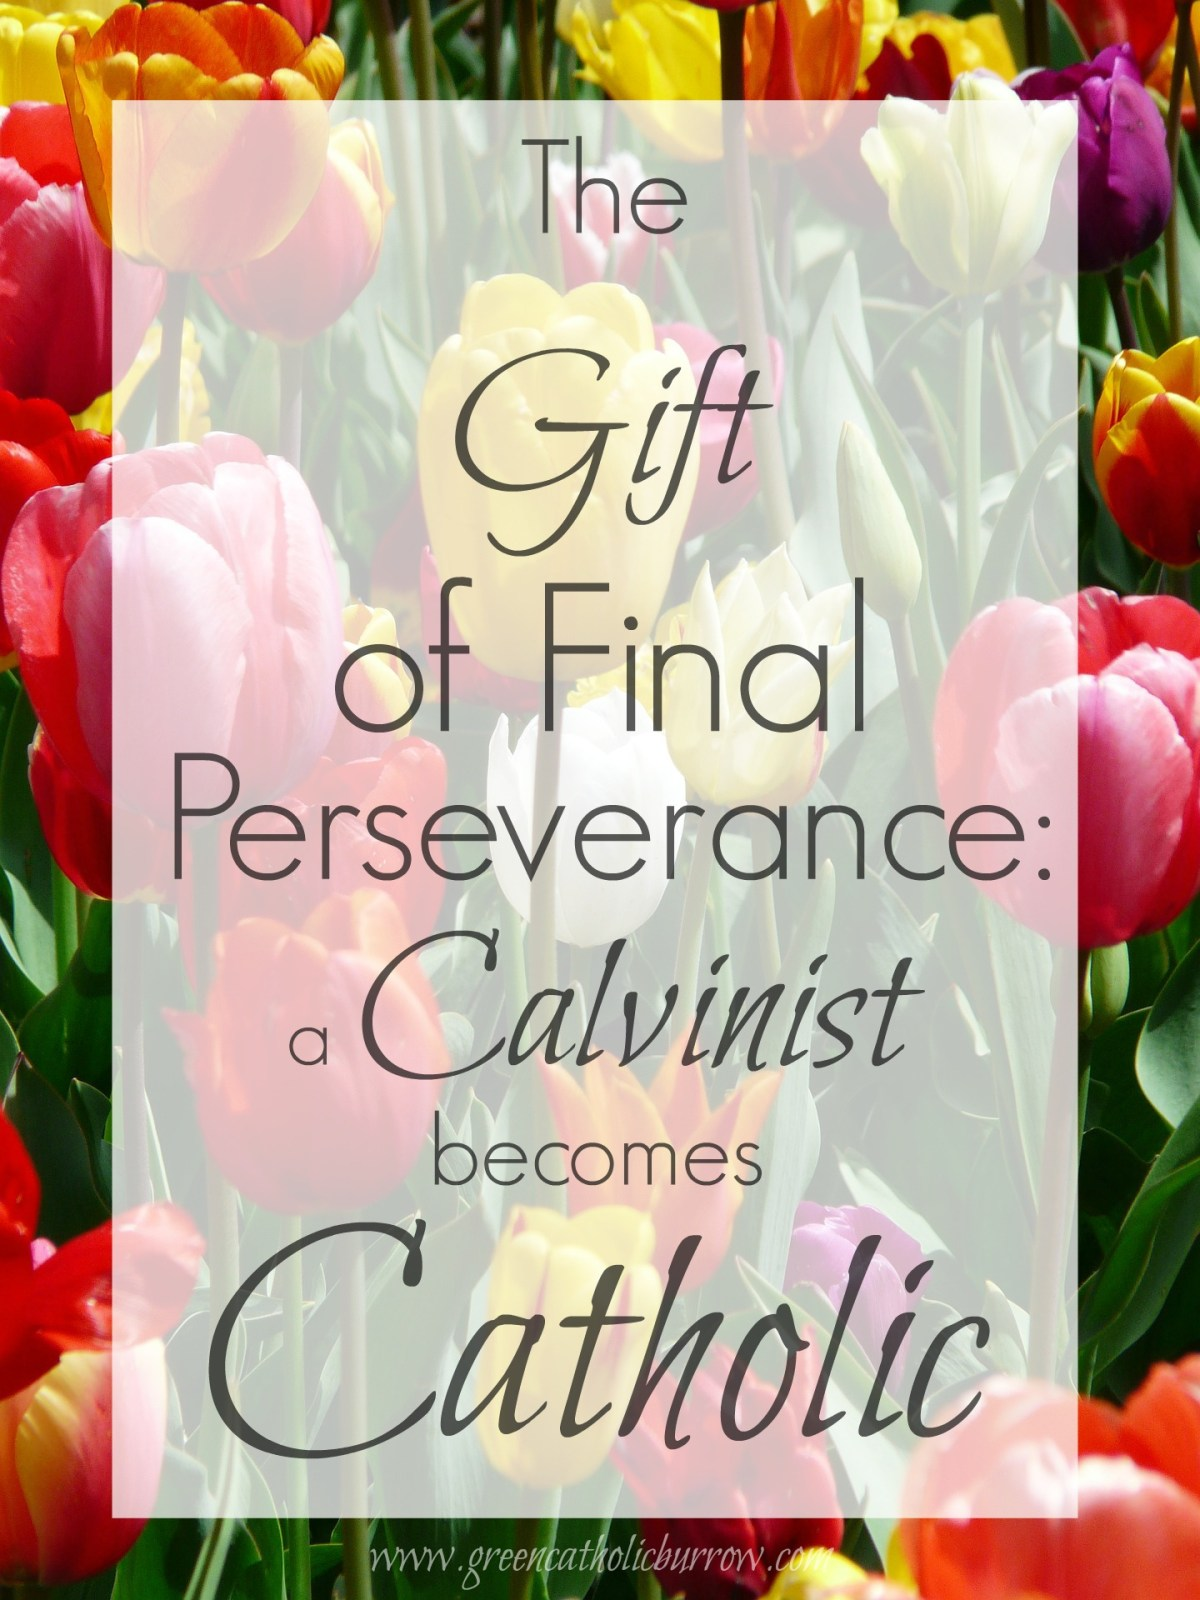 Why letting go of the Reformed doctrine of the Perseverance of the Saints was not a difficult step for me.